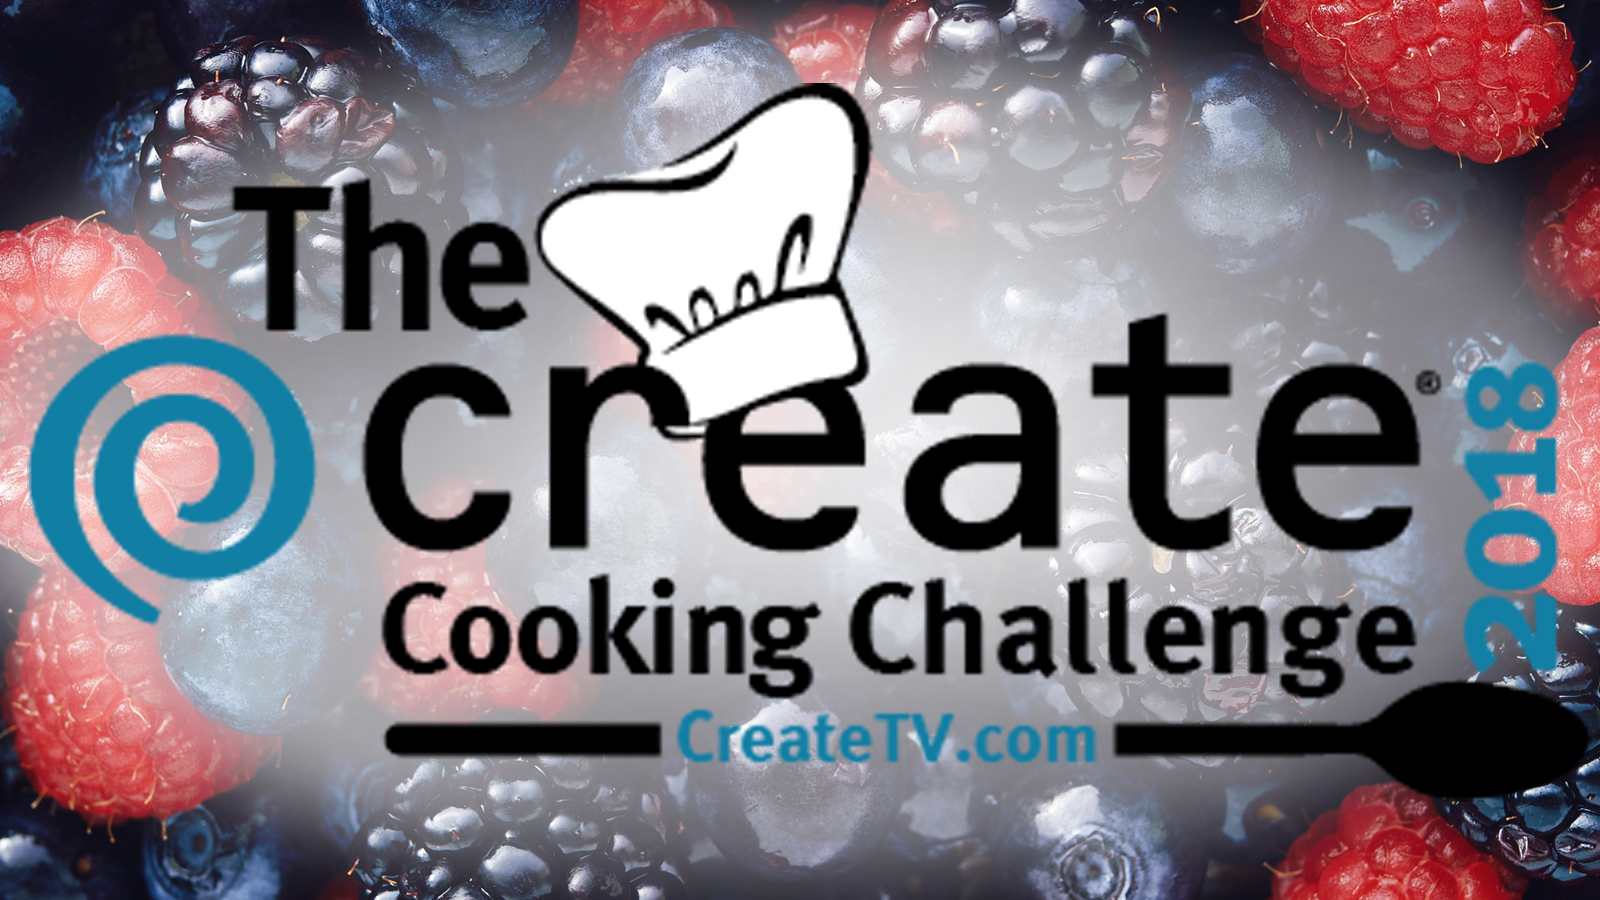 It's time to show off your culinary skills!